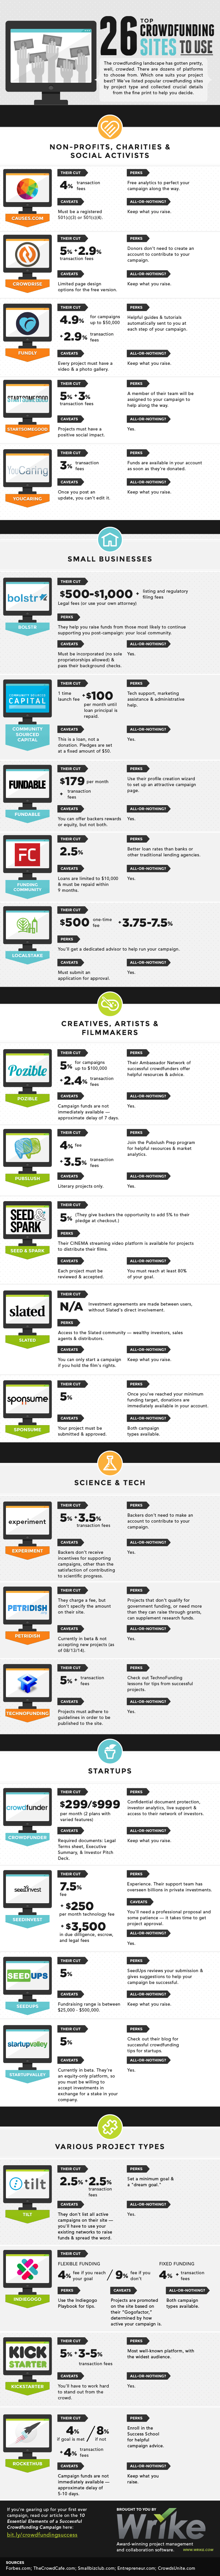 crowdfunding-sites-to-use-infographic-plaza